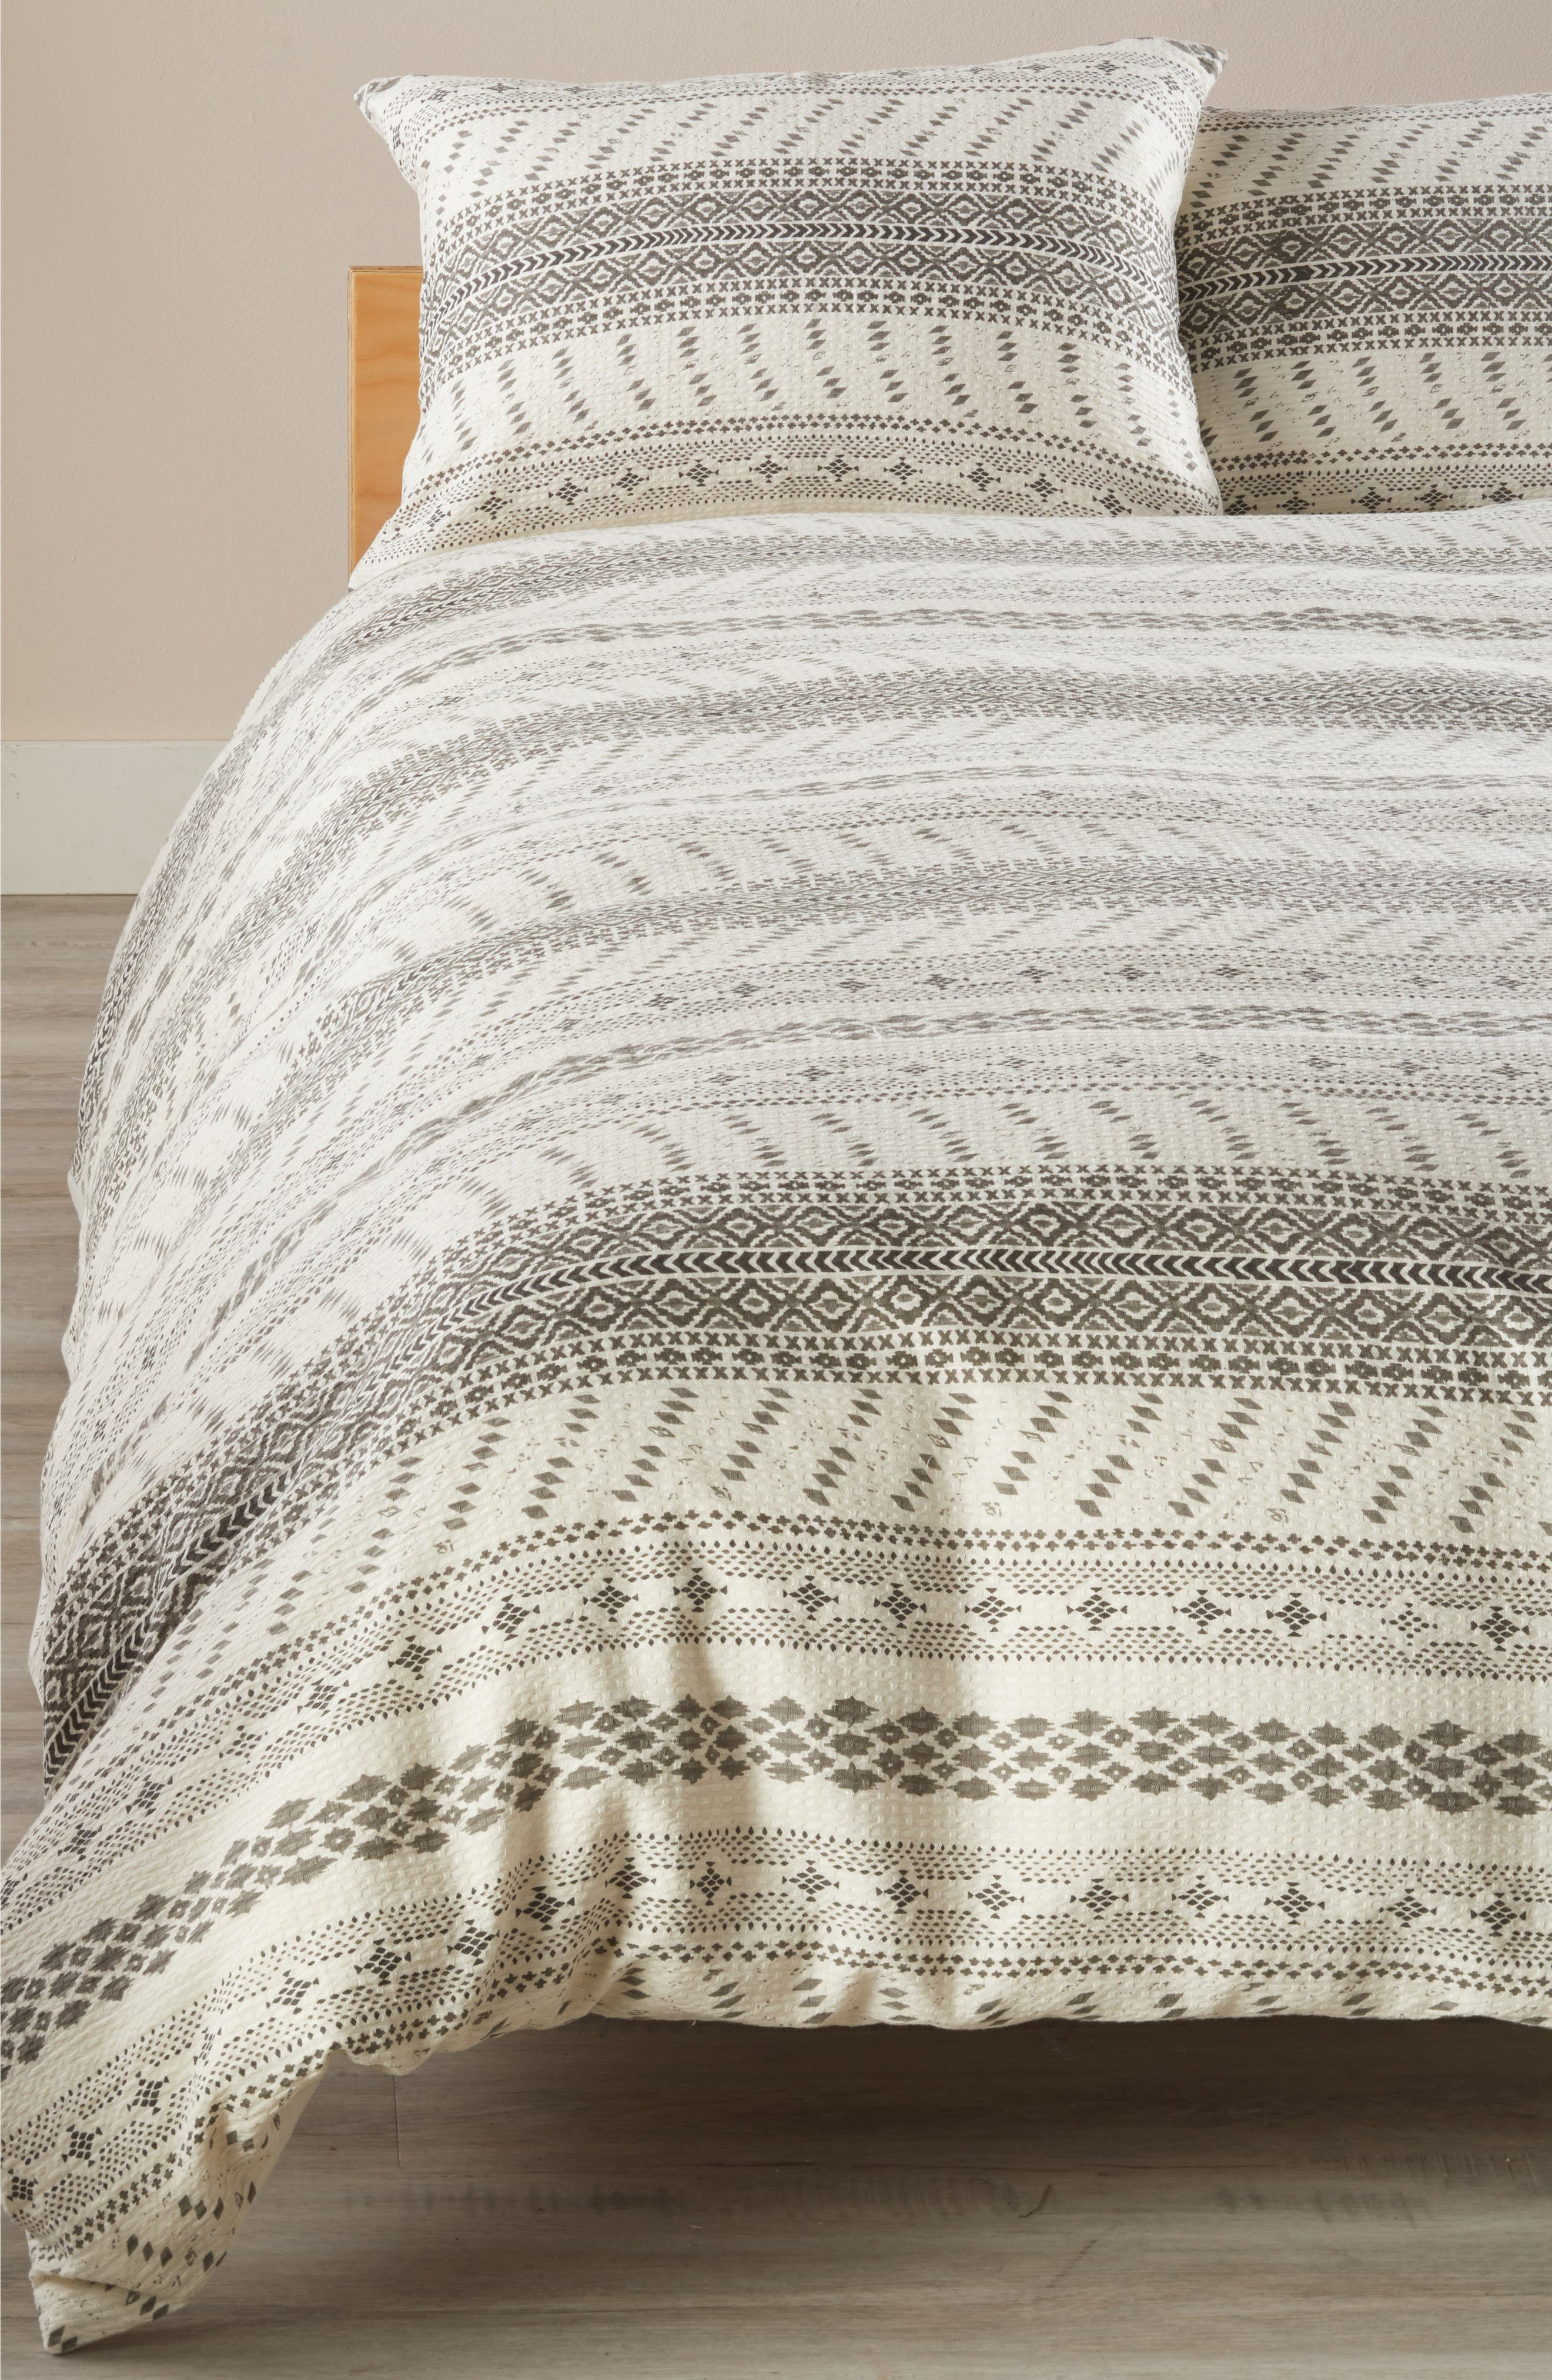 Nordstrom at Home Waffle Print Duvet Cover